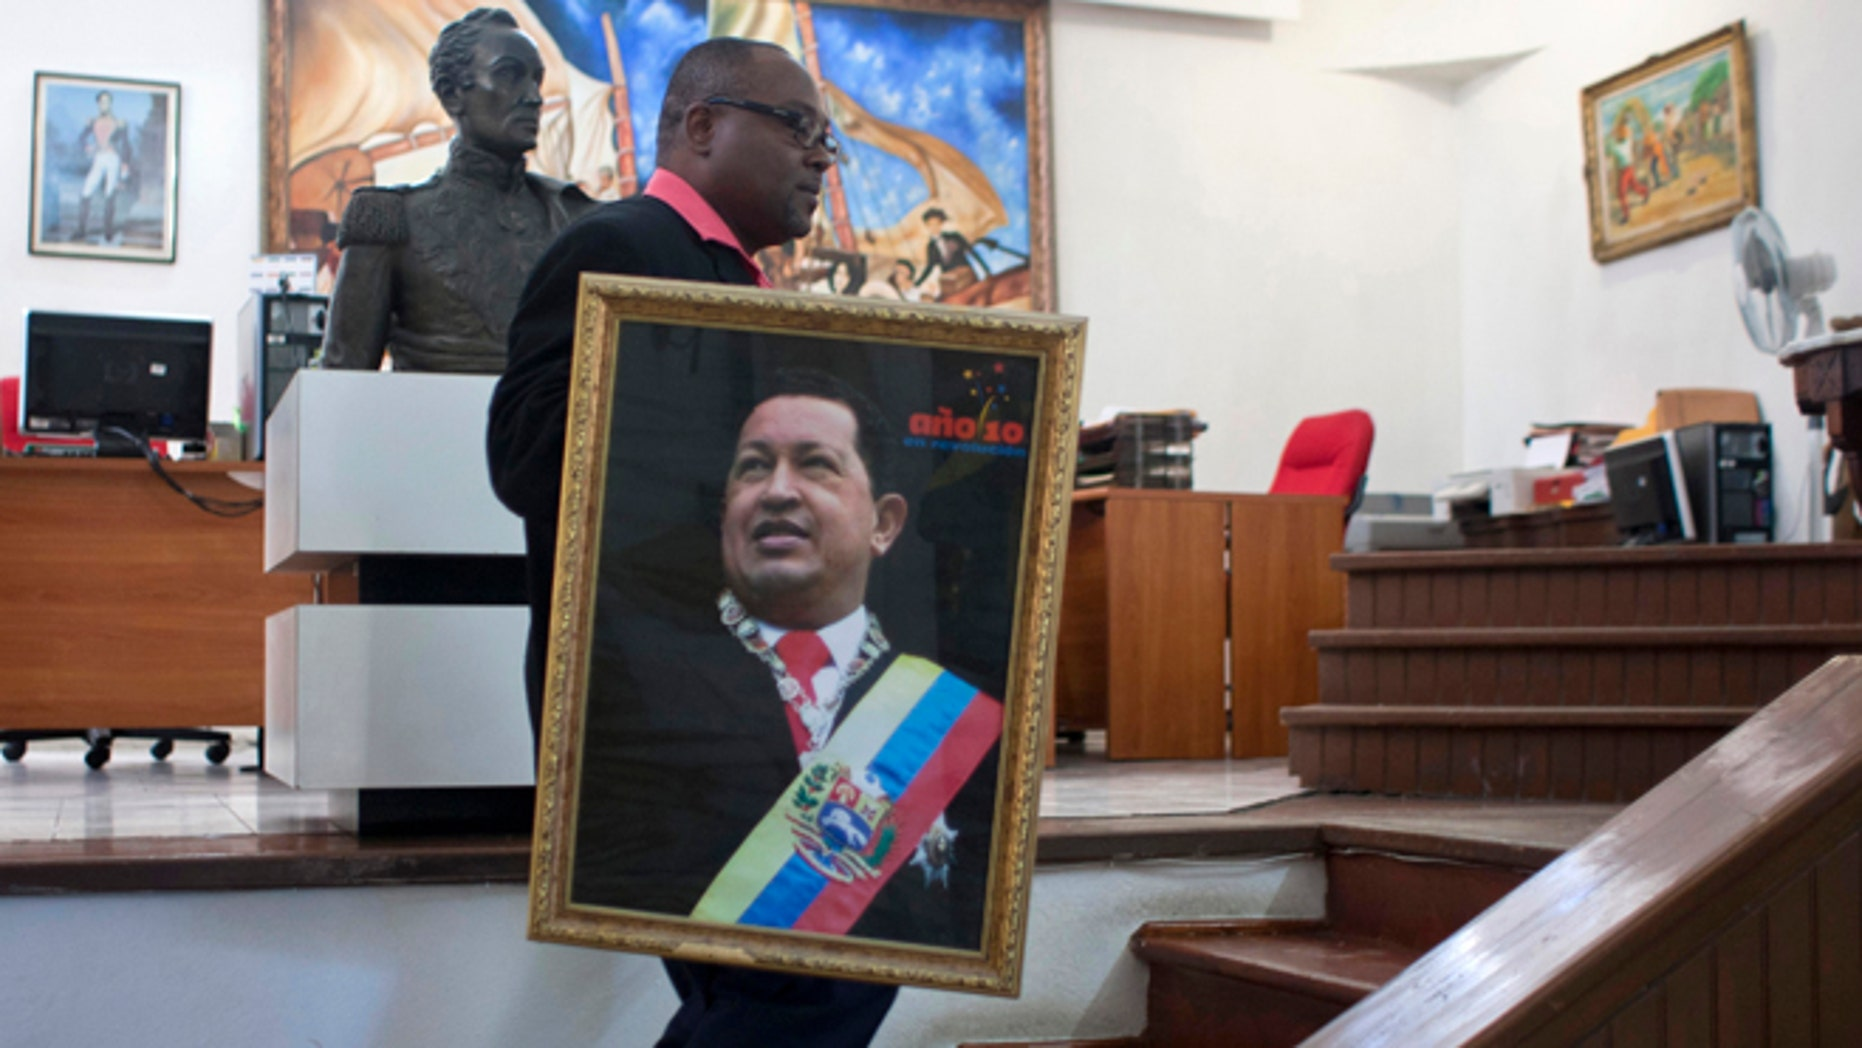 Dec. 21, 2012: Pierre Denis, who works at Venezuela's embassy, carries an image of Venezuela's President Hugo Chavez after holding a Mass to pray for Chavez's health in Petion-Ville, Haiti.